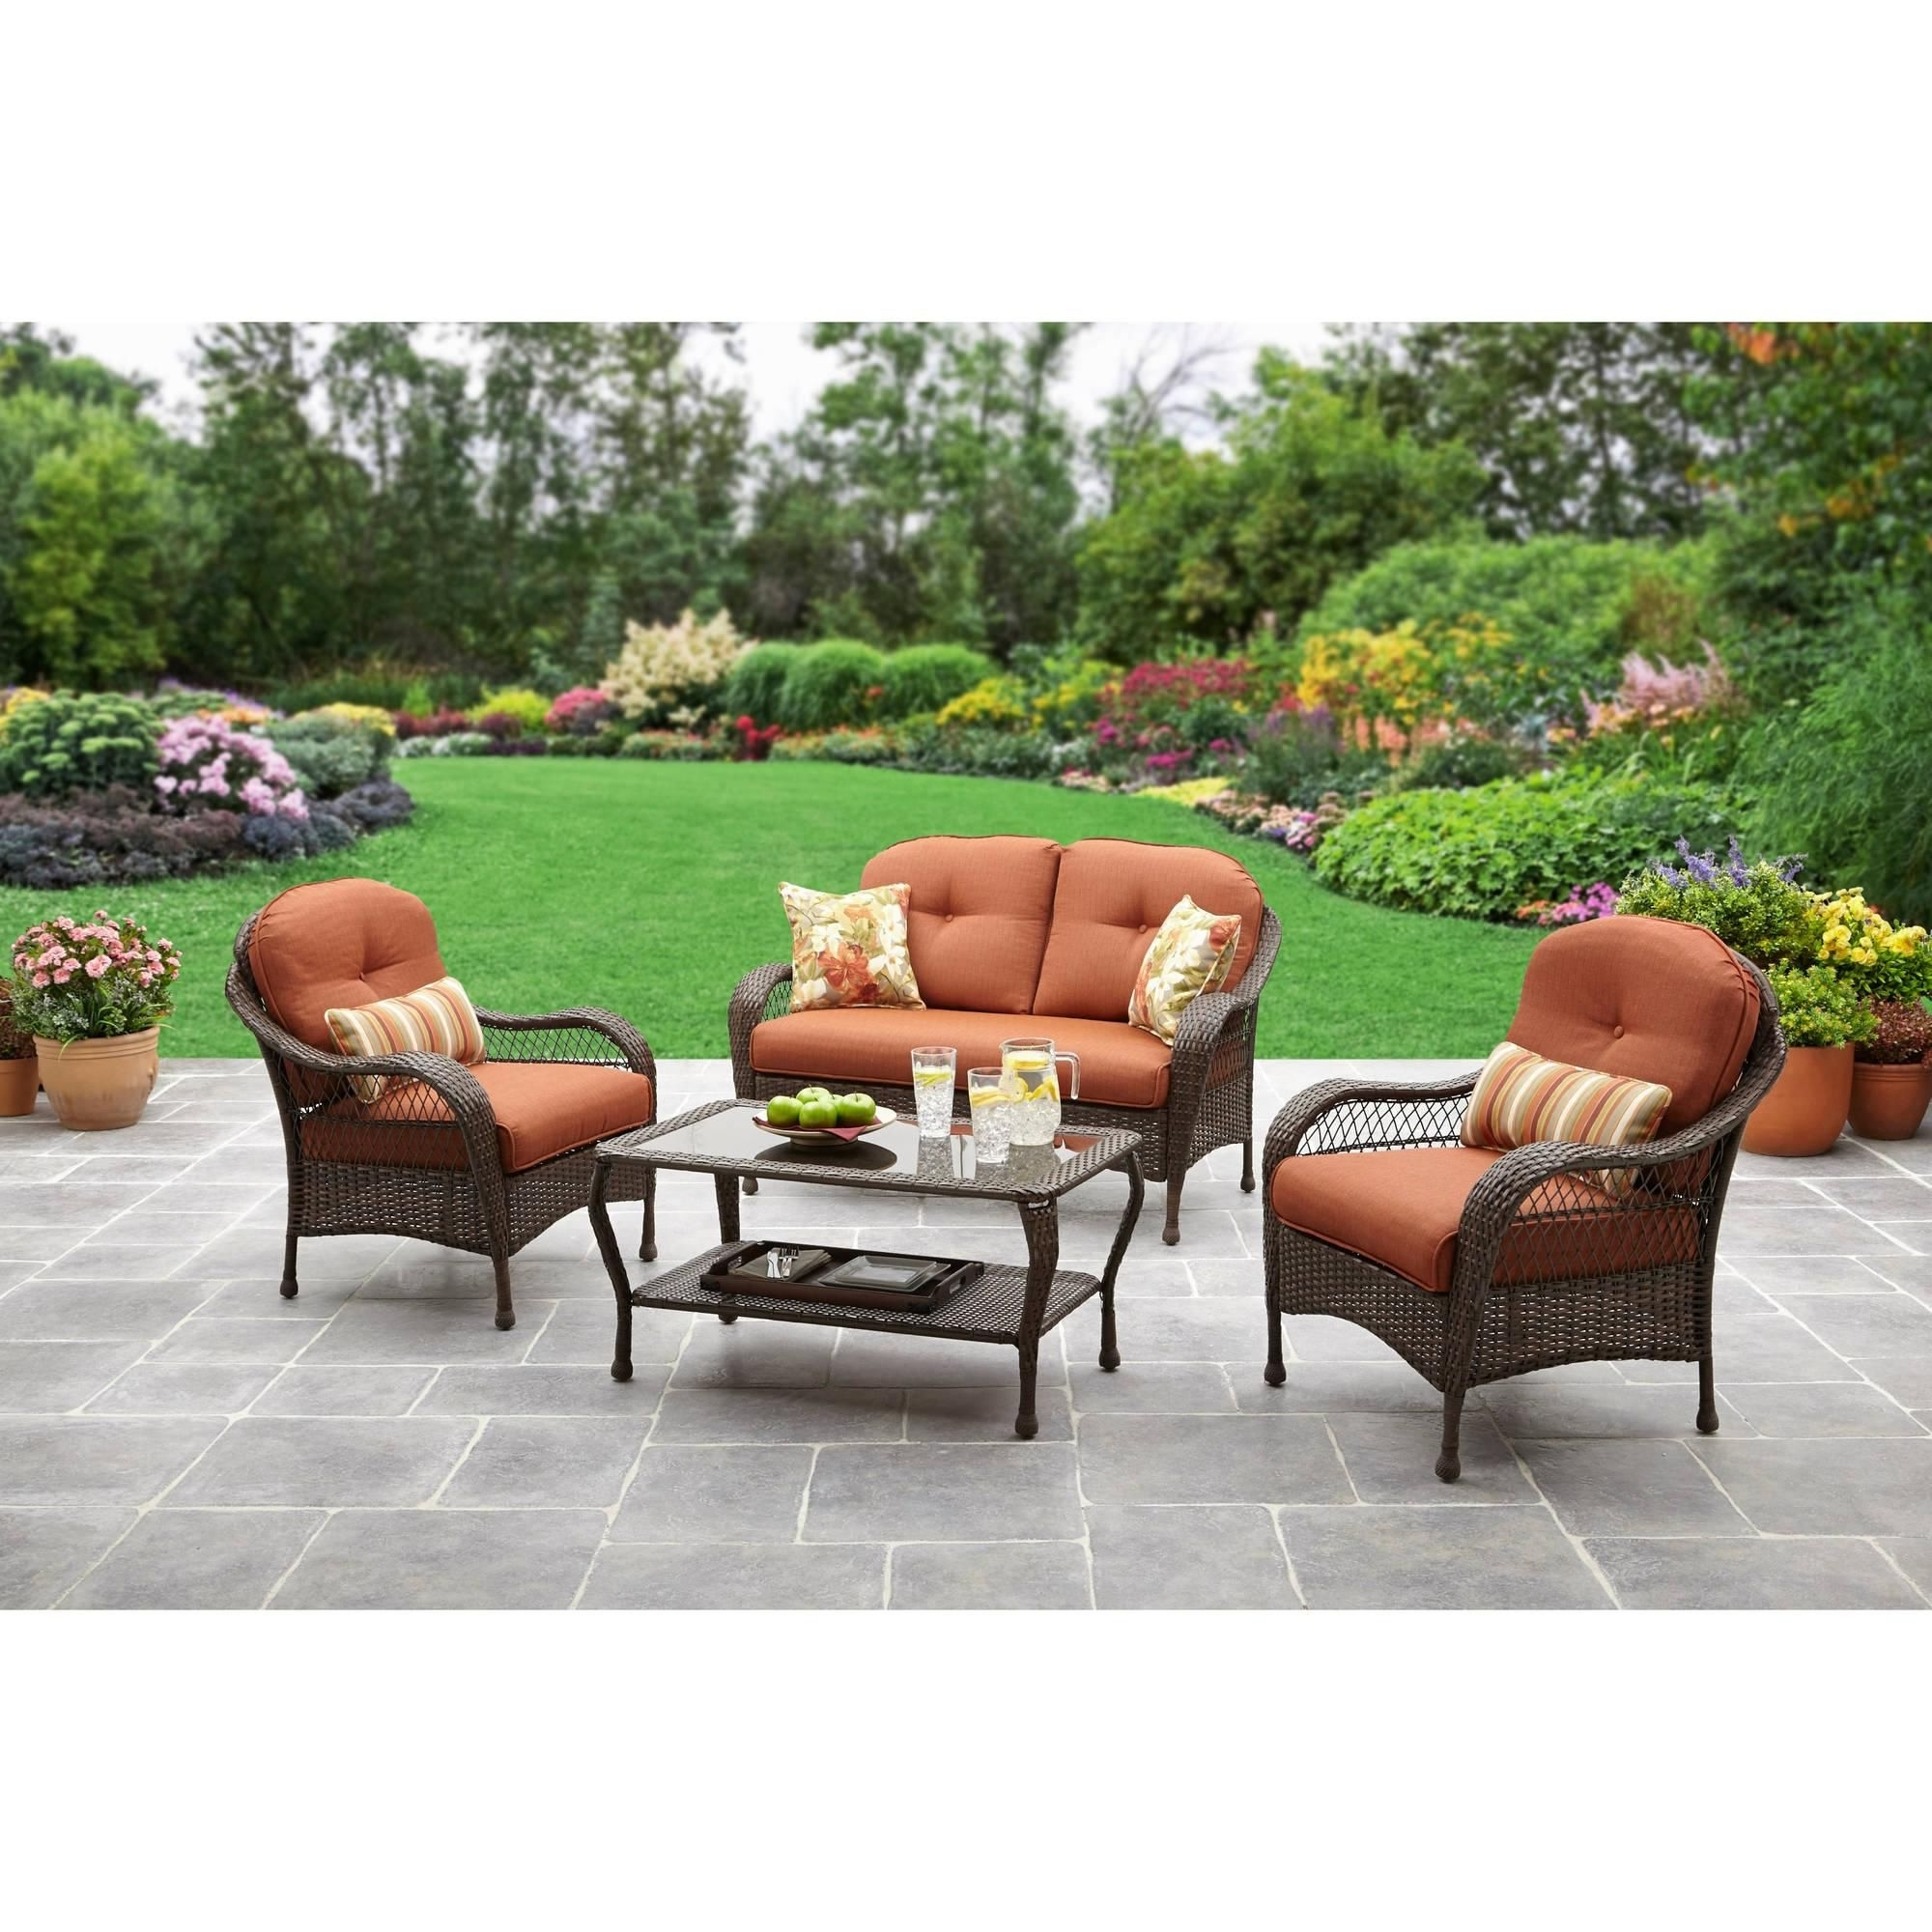 Popular Patio Conversation Sets At Walmart Pertaining To Replacement Cushions For Outdoor Furniture Walmart – Best Spray (View 5 of 15)